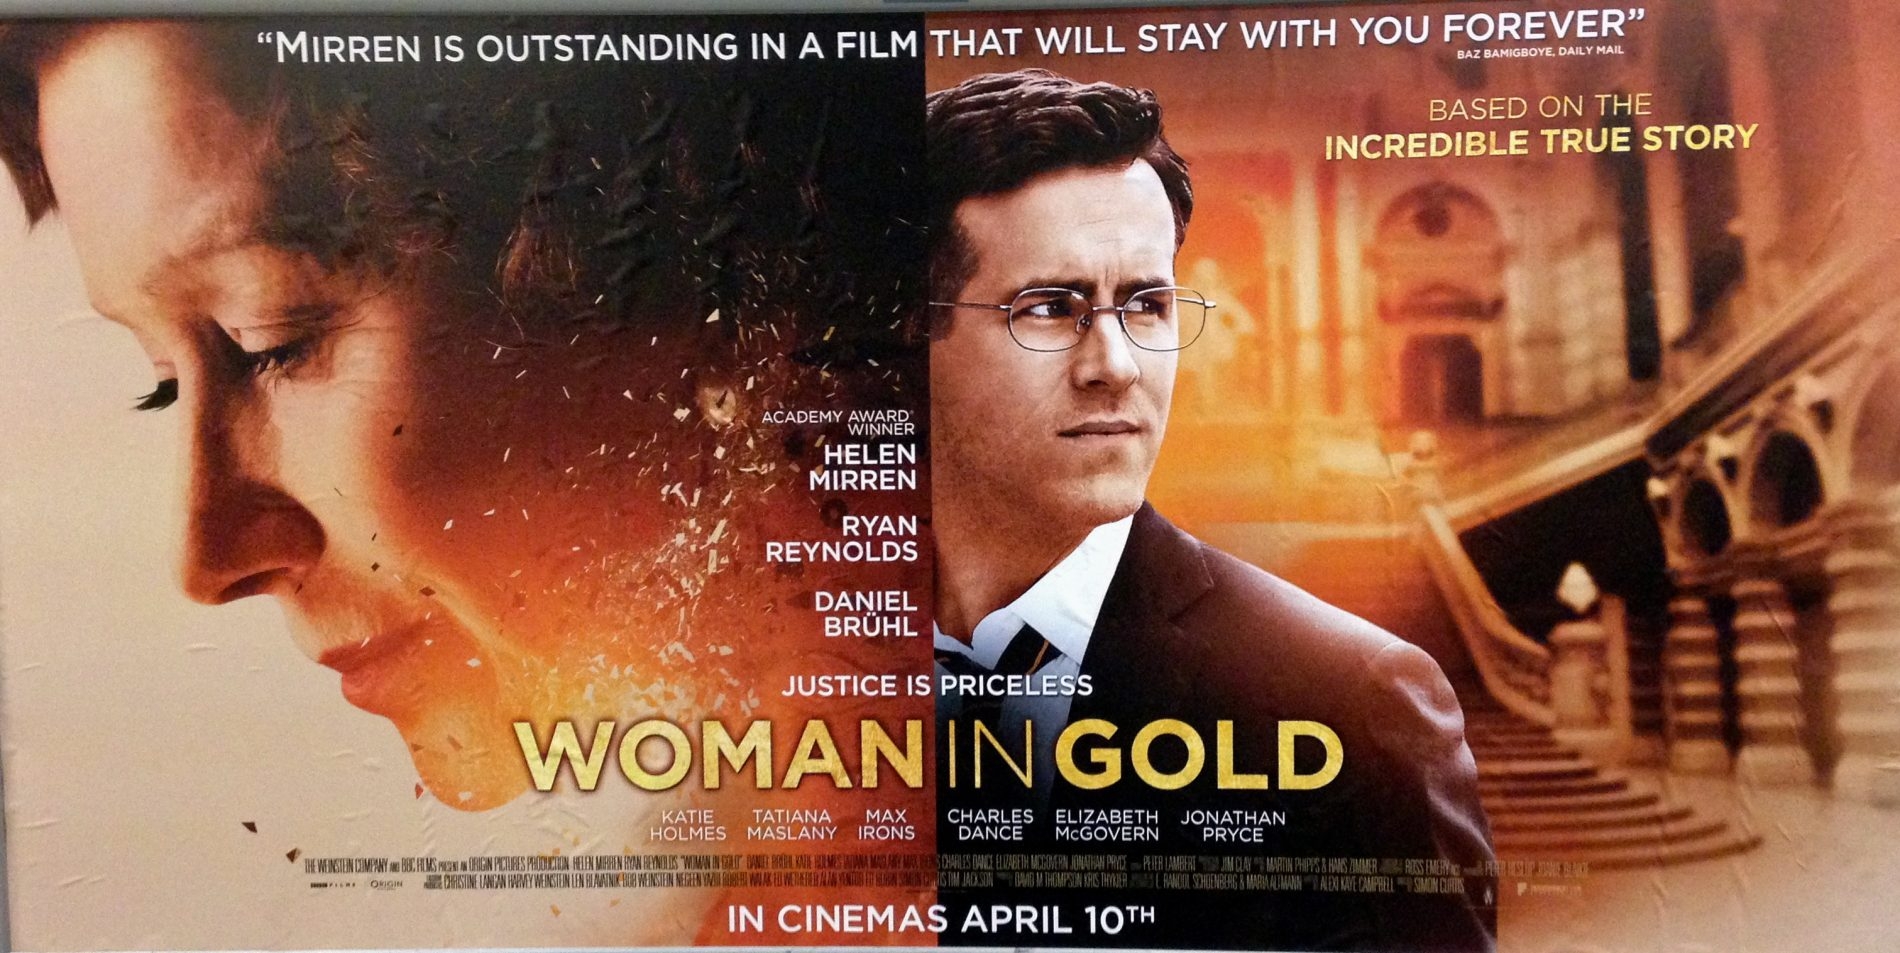 WOMAN IN GOLD is released in cinemas on 10th April 2015.